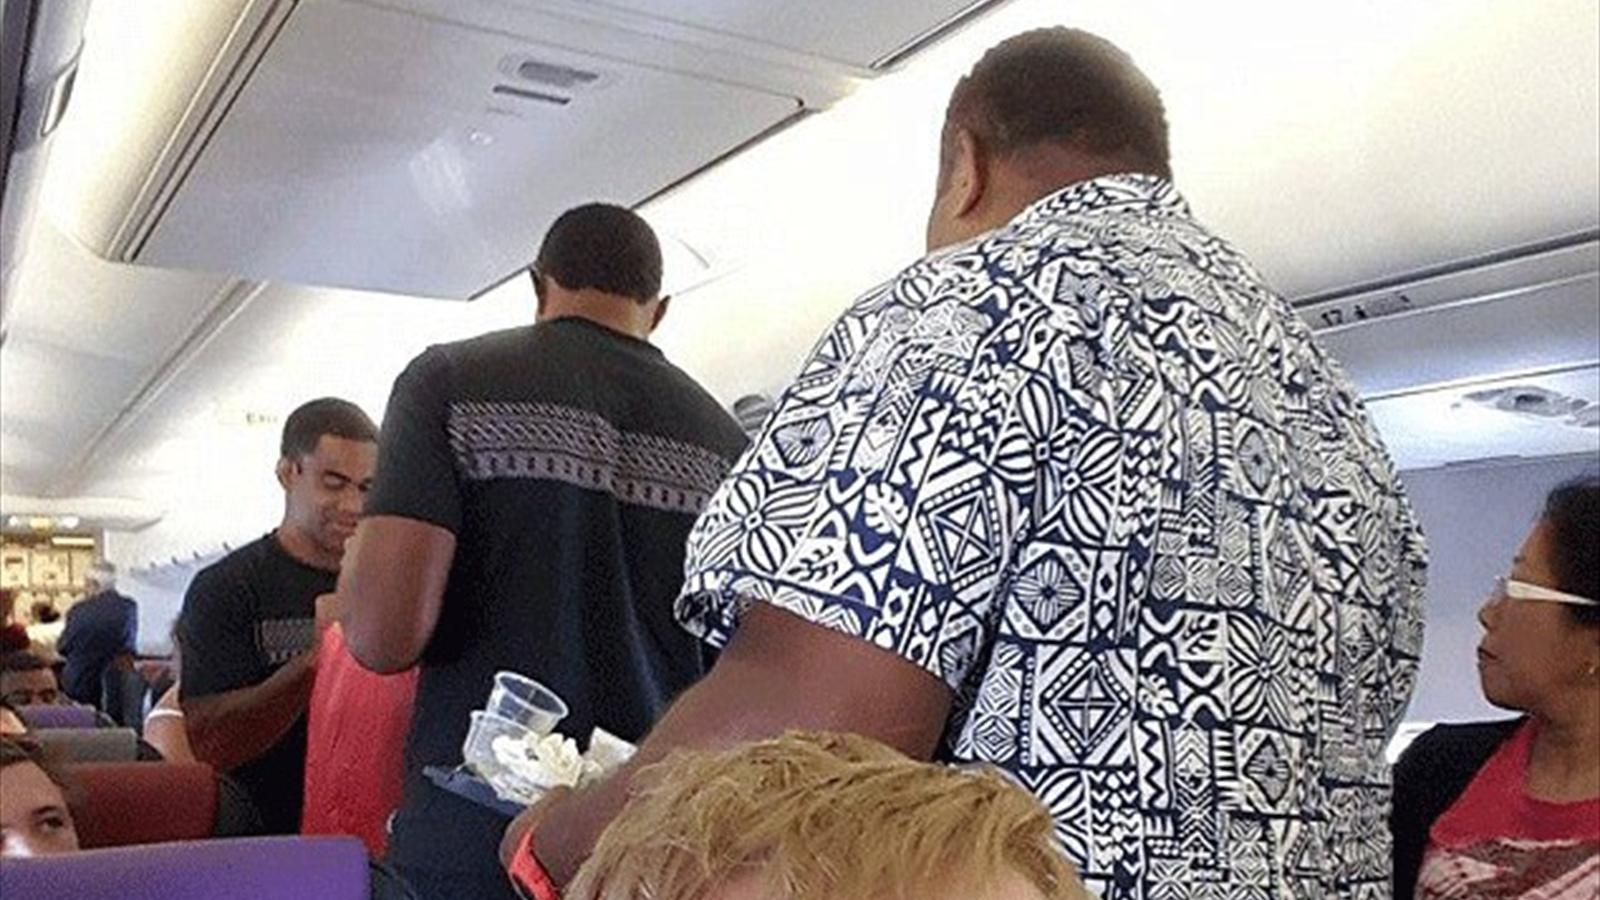 Fiji's rugby players help serve food and drinks on a flight (Facebook)